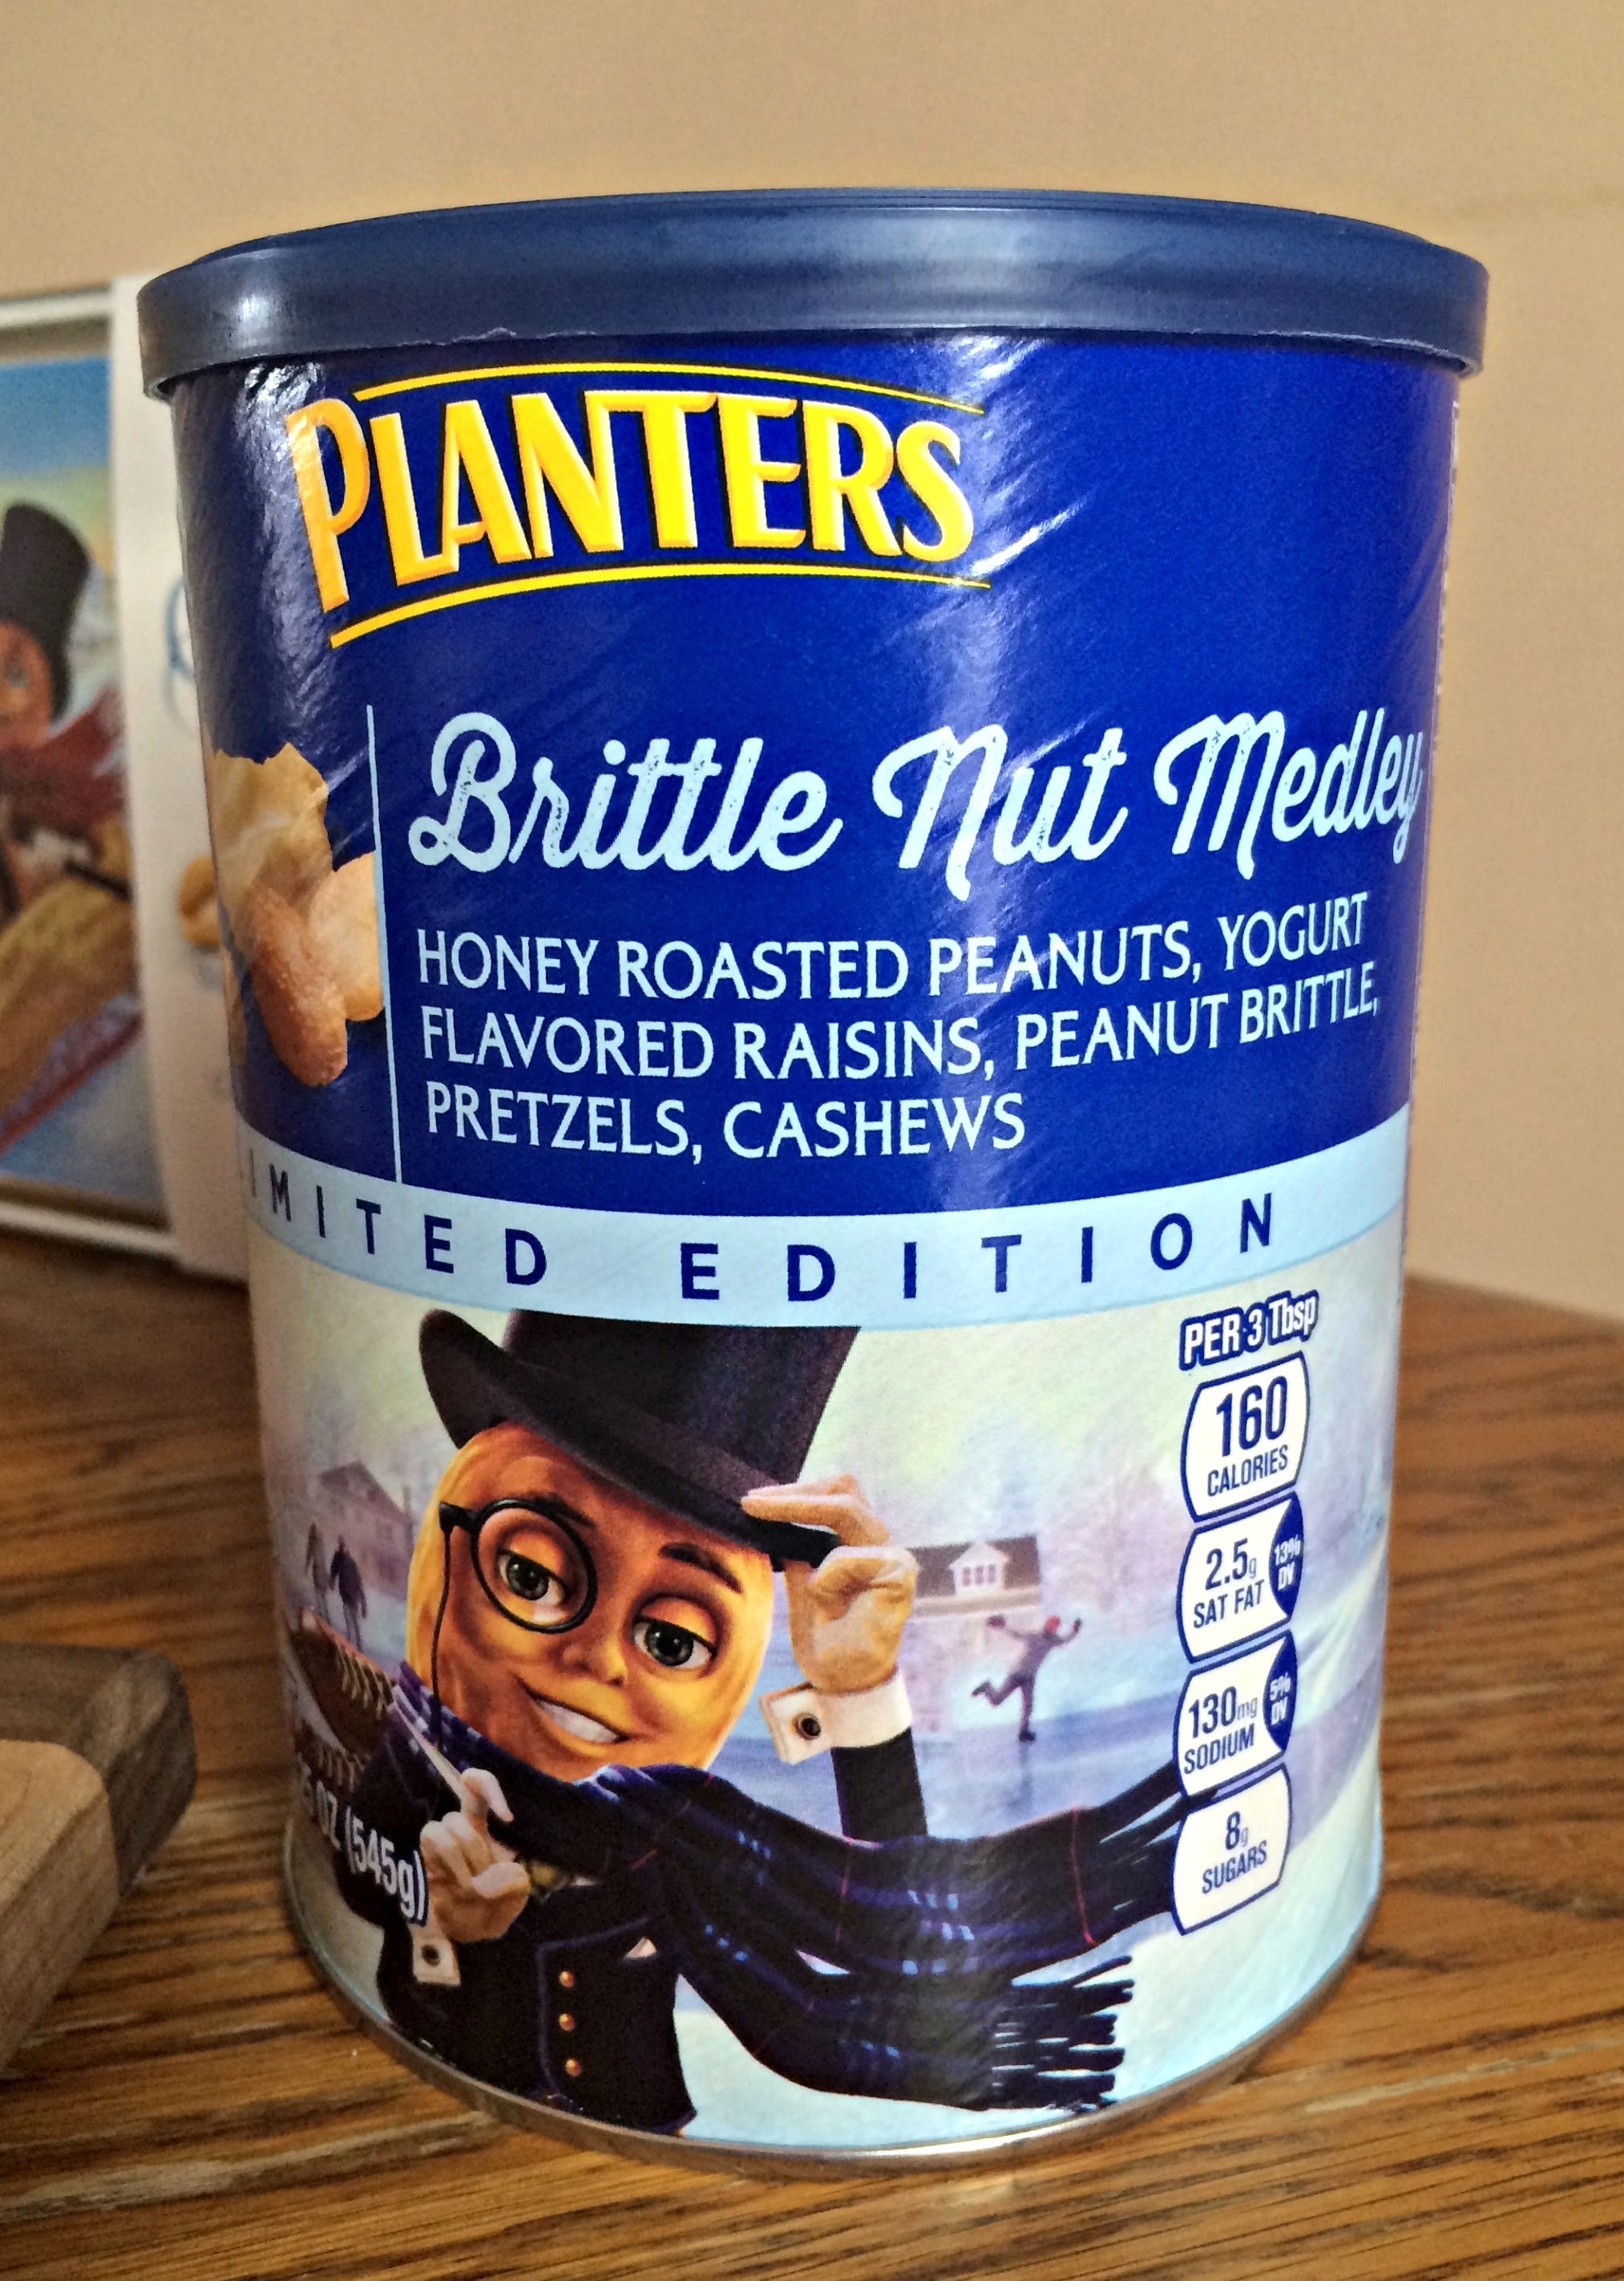 Planters Brittle Nut Medley on planters munch bar, planters holiday 3-pack, planters almond chocolate crunch, planters tailgate mix, planters pumpkin spice almonds, planters holiday mix, planters almonds seasonal winter, planters nuts gift pack, planters winter spiced nuts, planters pumpkin spiced almonds 22 5-ounce, planters spiced mix, planters nuts creme,